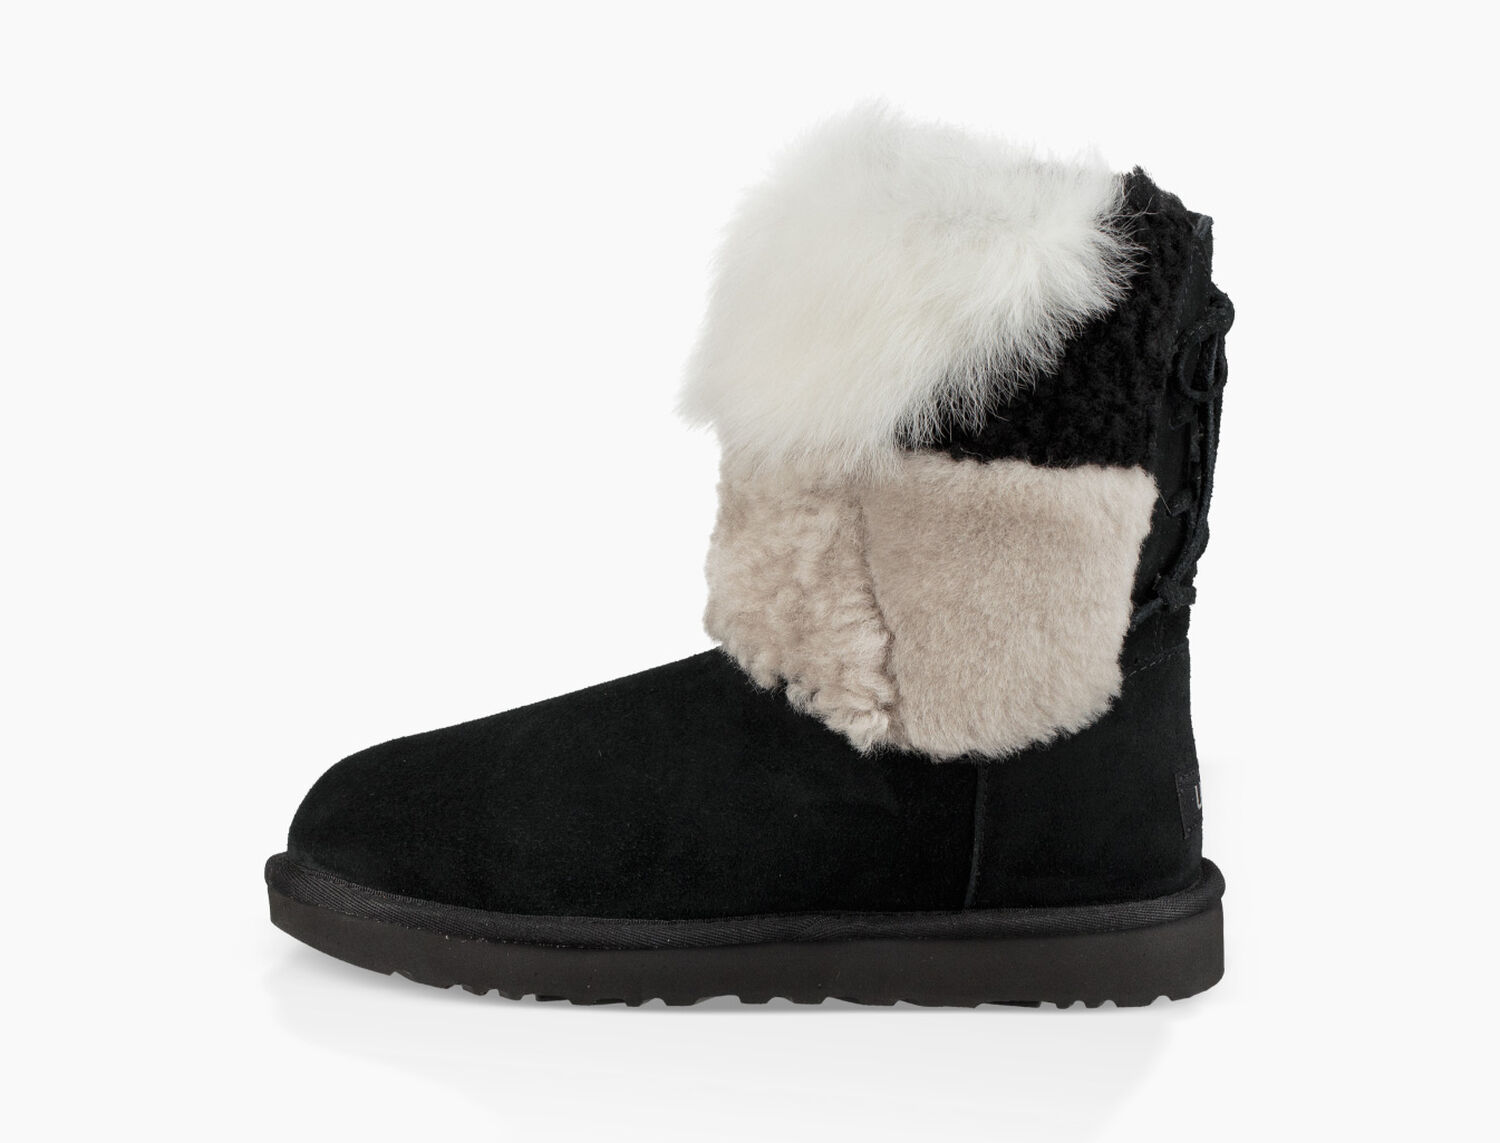 dcc7657a742 Women's Share this product Classic Short Patchwork Fluff Boot